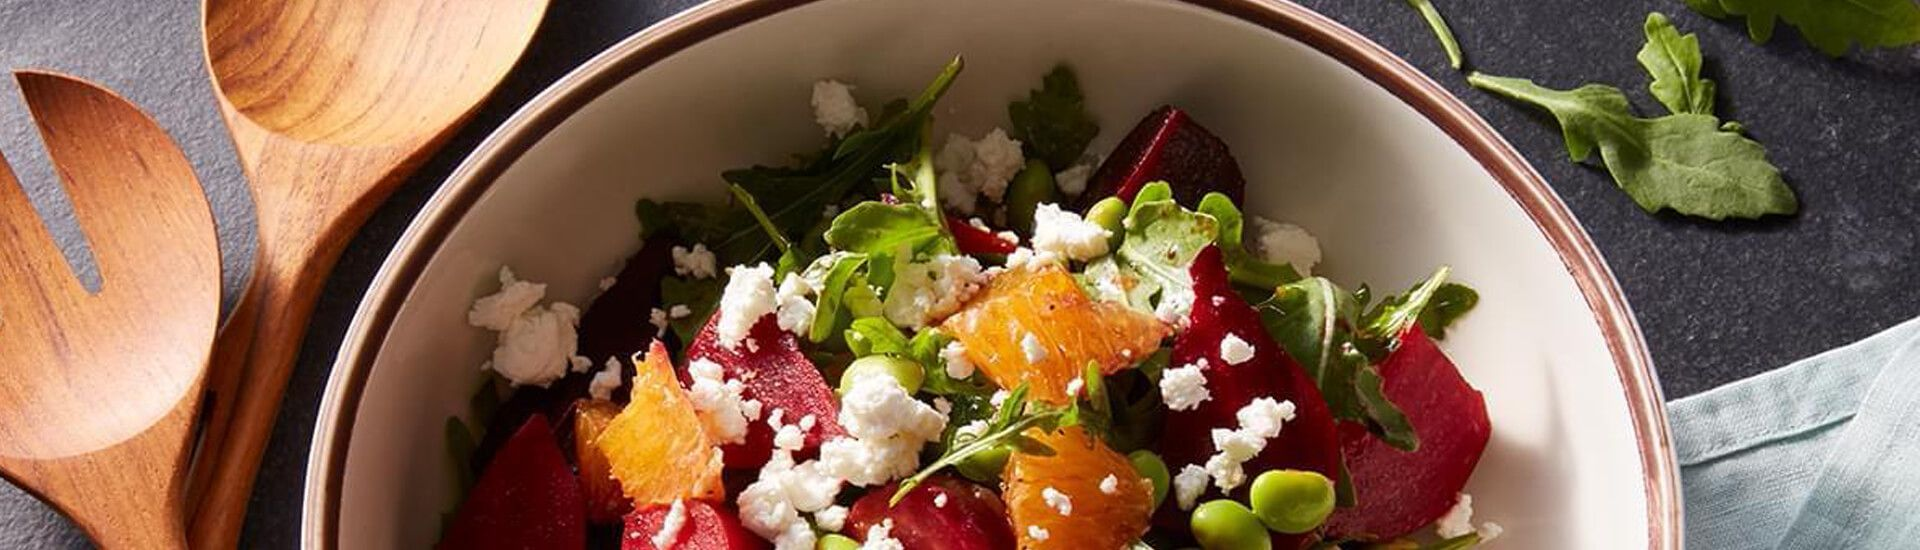 Beet Salad with Orange, Edamame and Goat Cheese